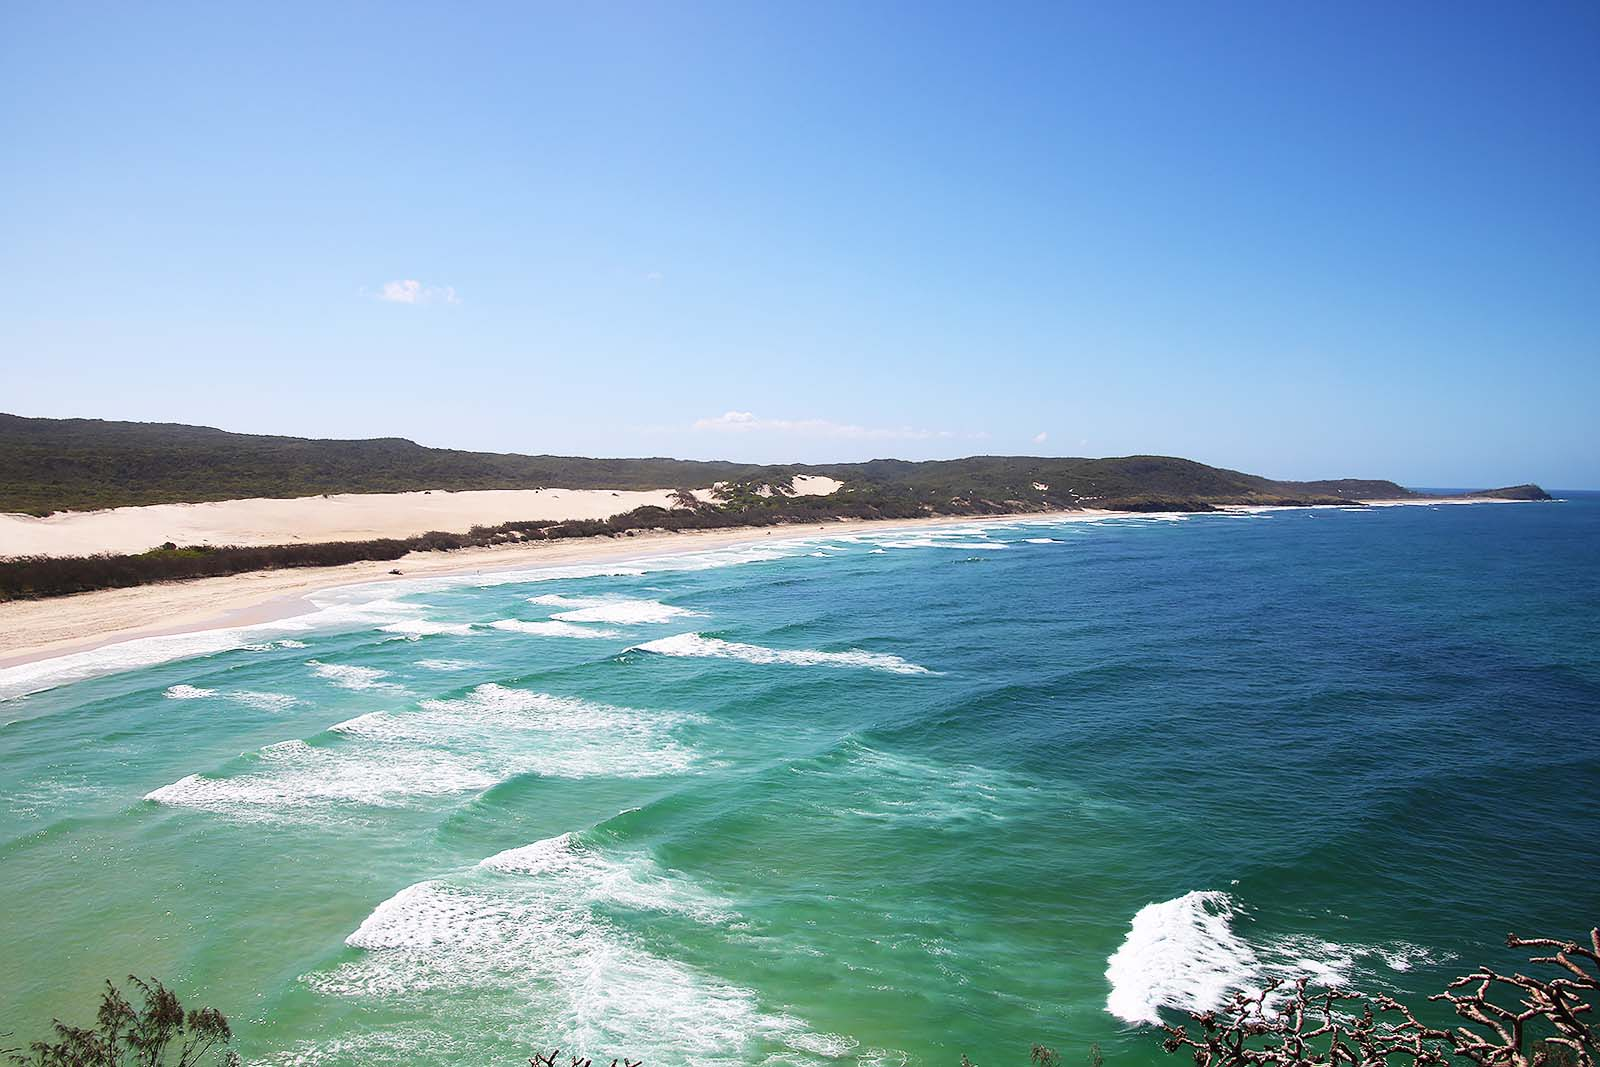 Fraser Island Photo by Lauren Hardiman